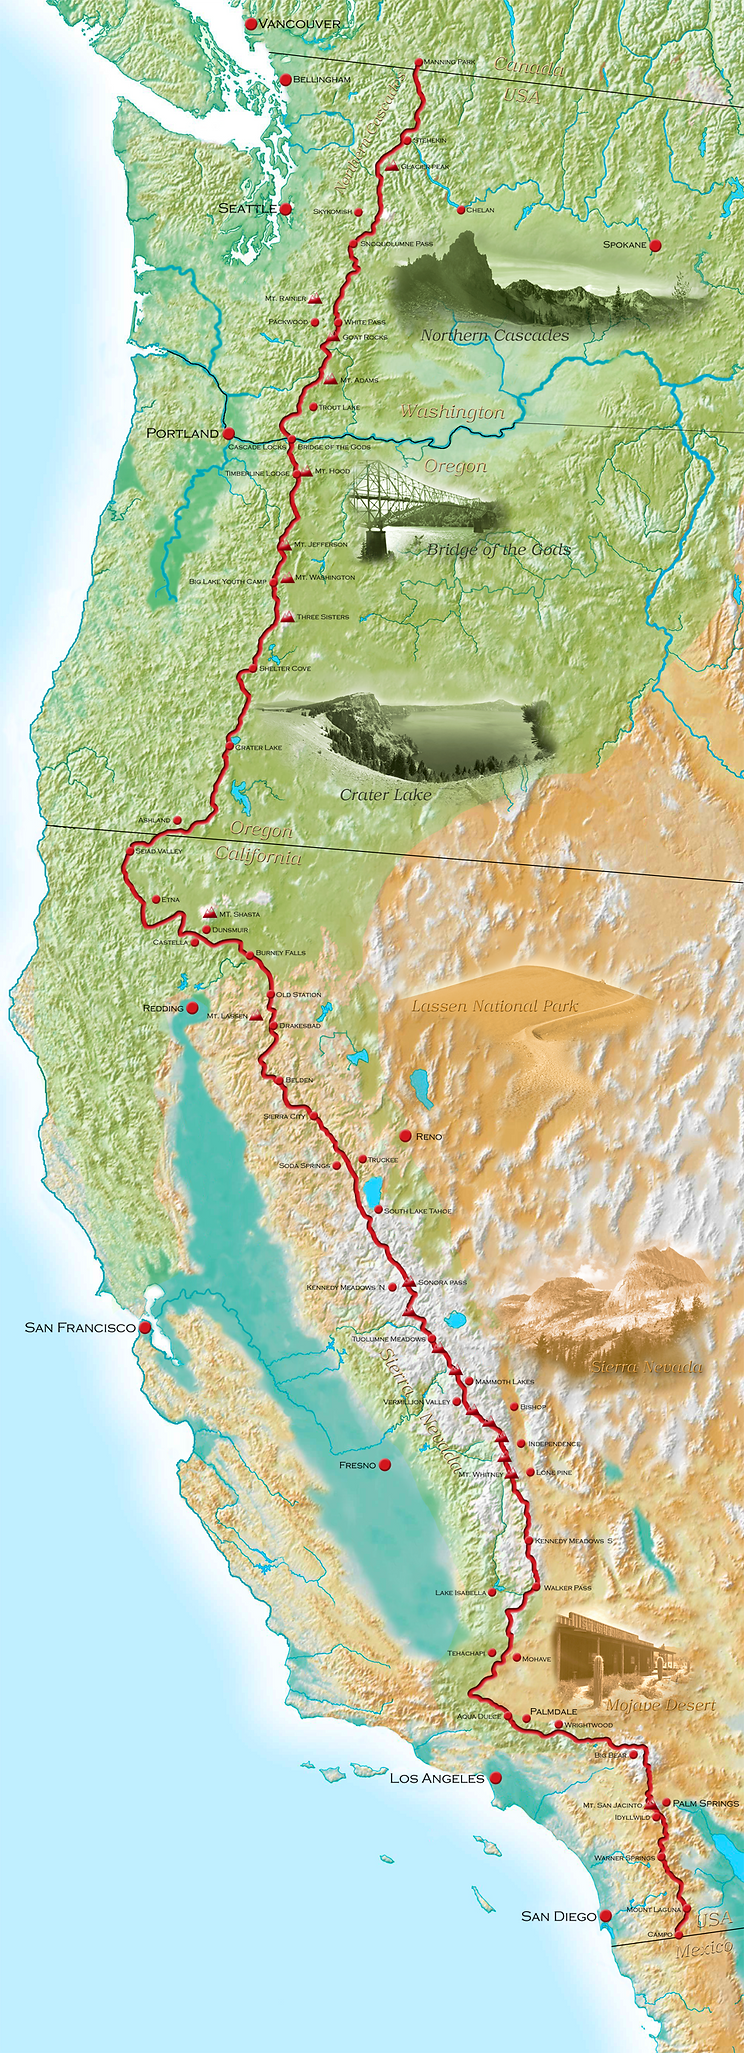 High resolution hiking map of the entire Pacific crest Trail (PCT) coipyright Andre de Jel - Friendlyhiker.com